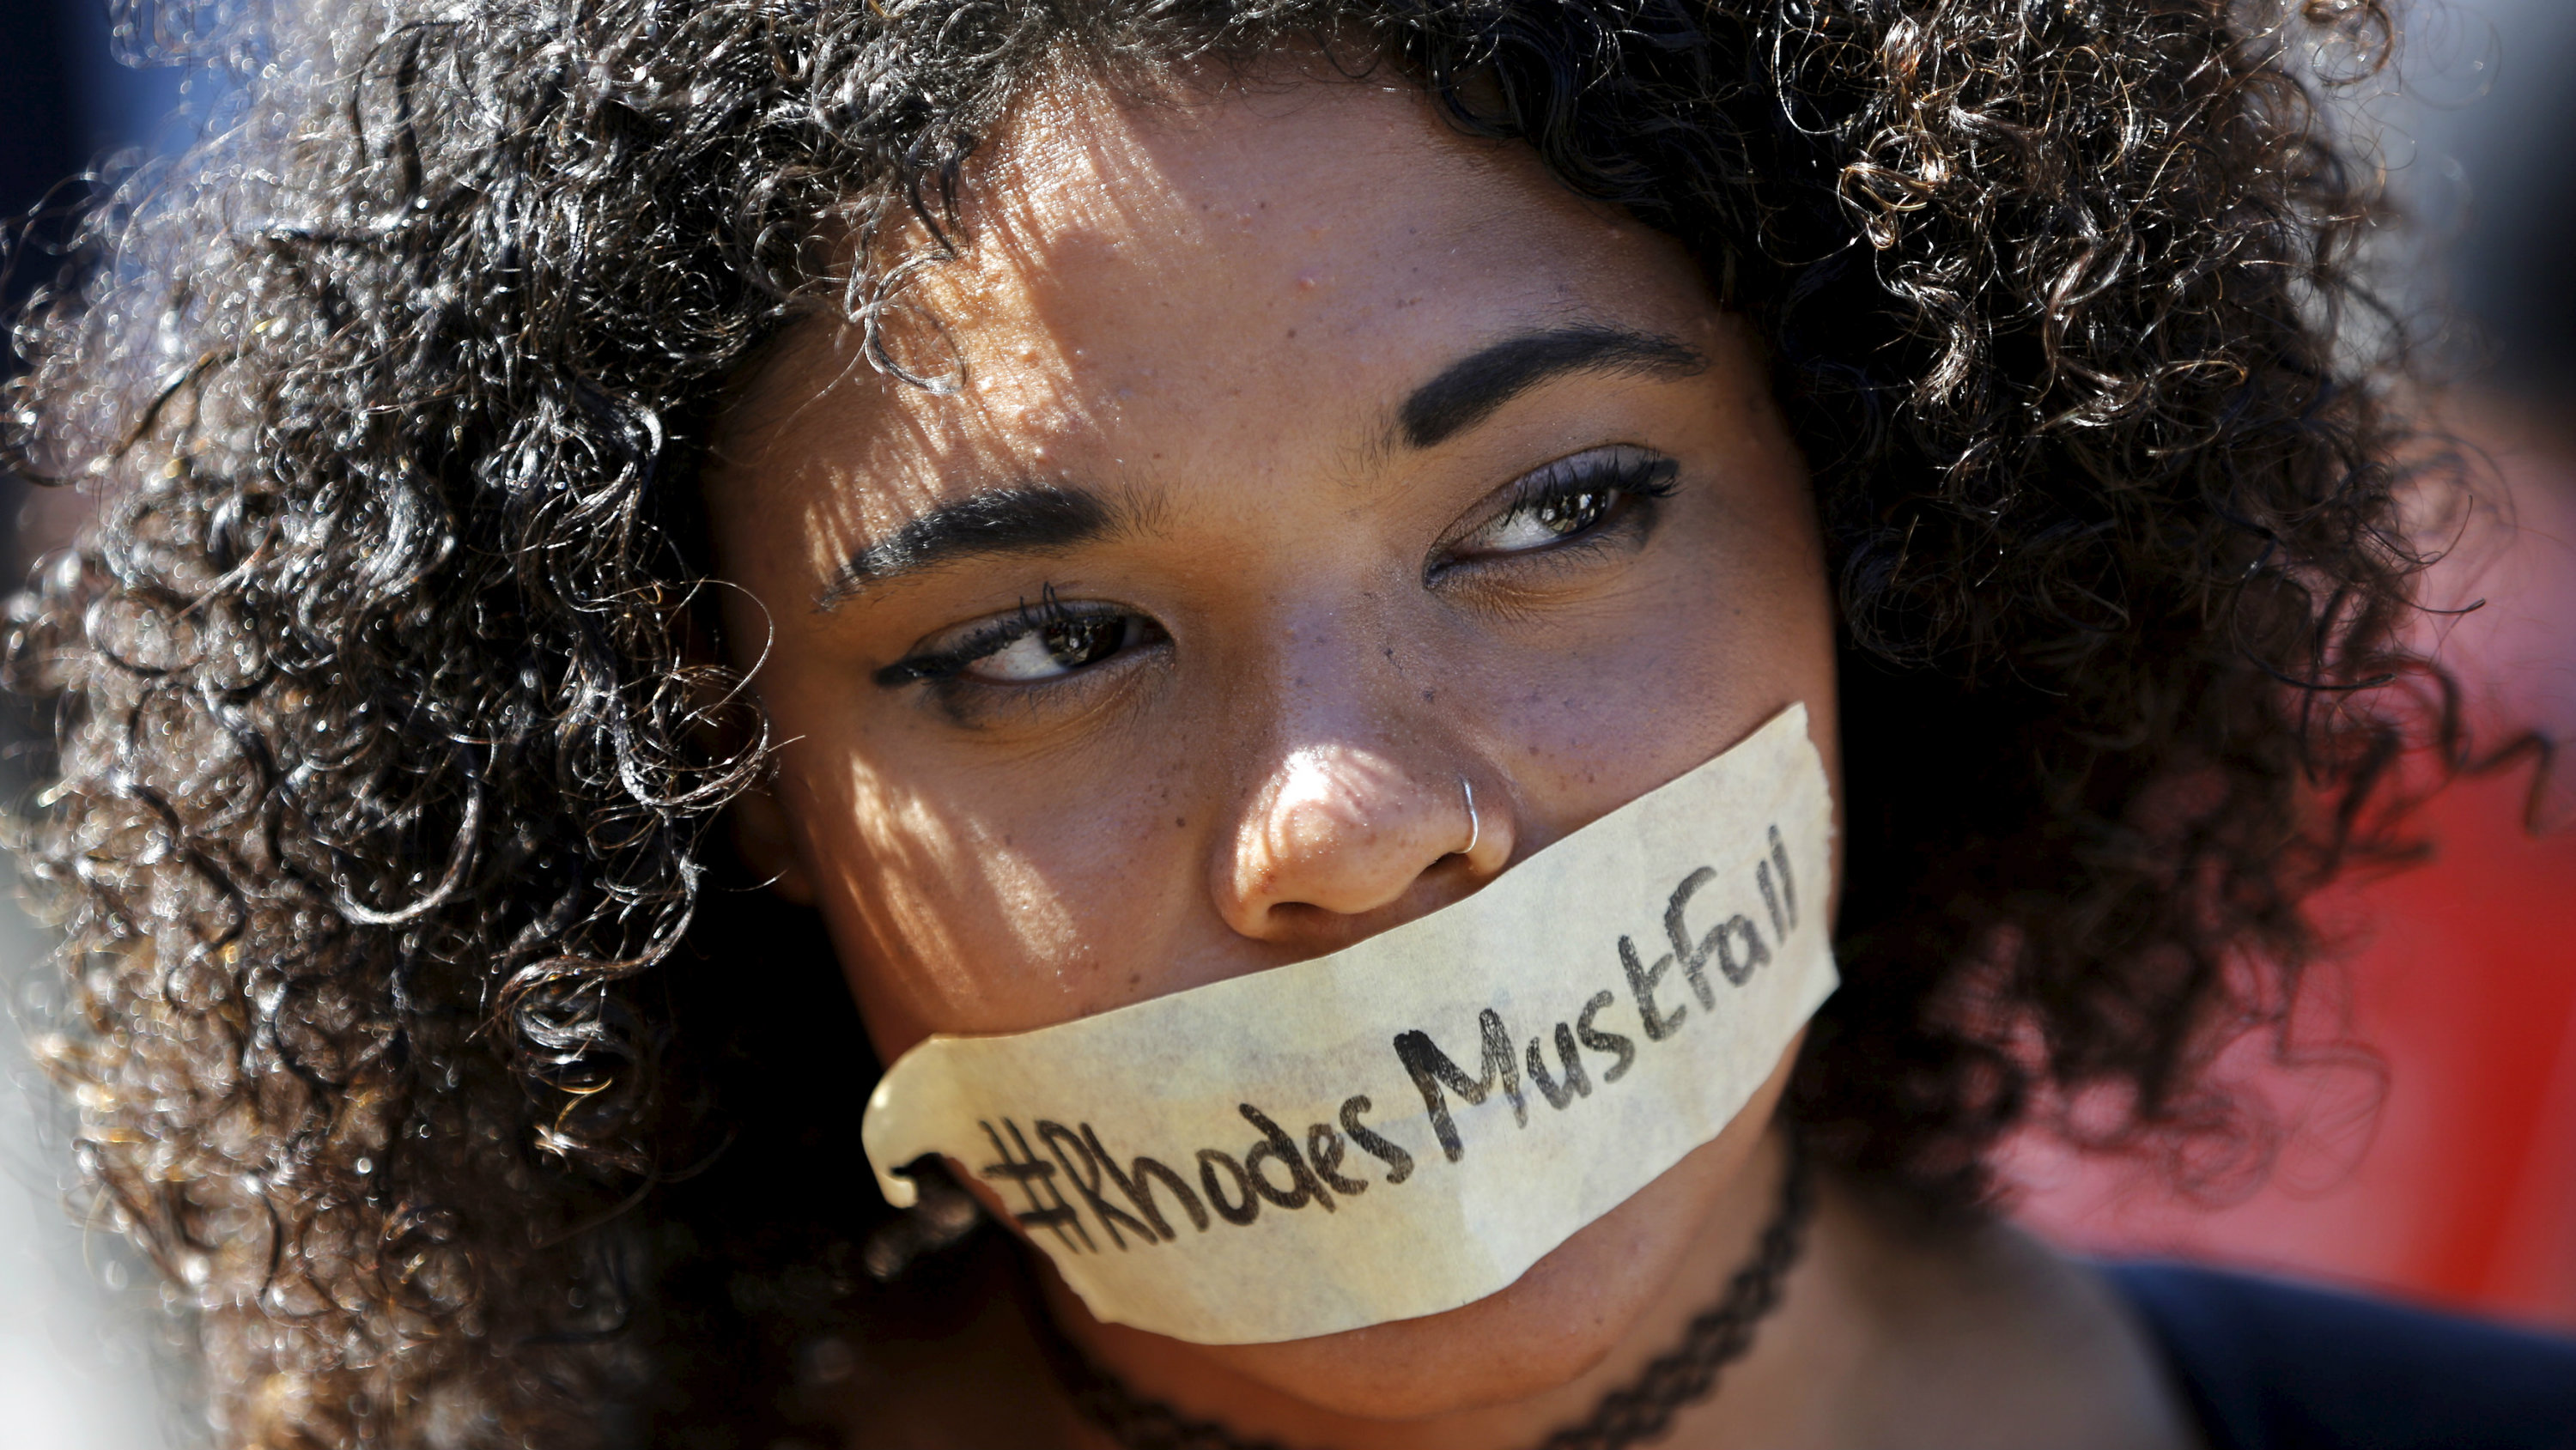 A student with a #RhodesMustFall sticker taped across her mouth.